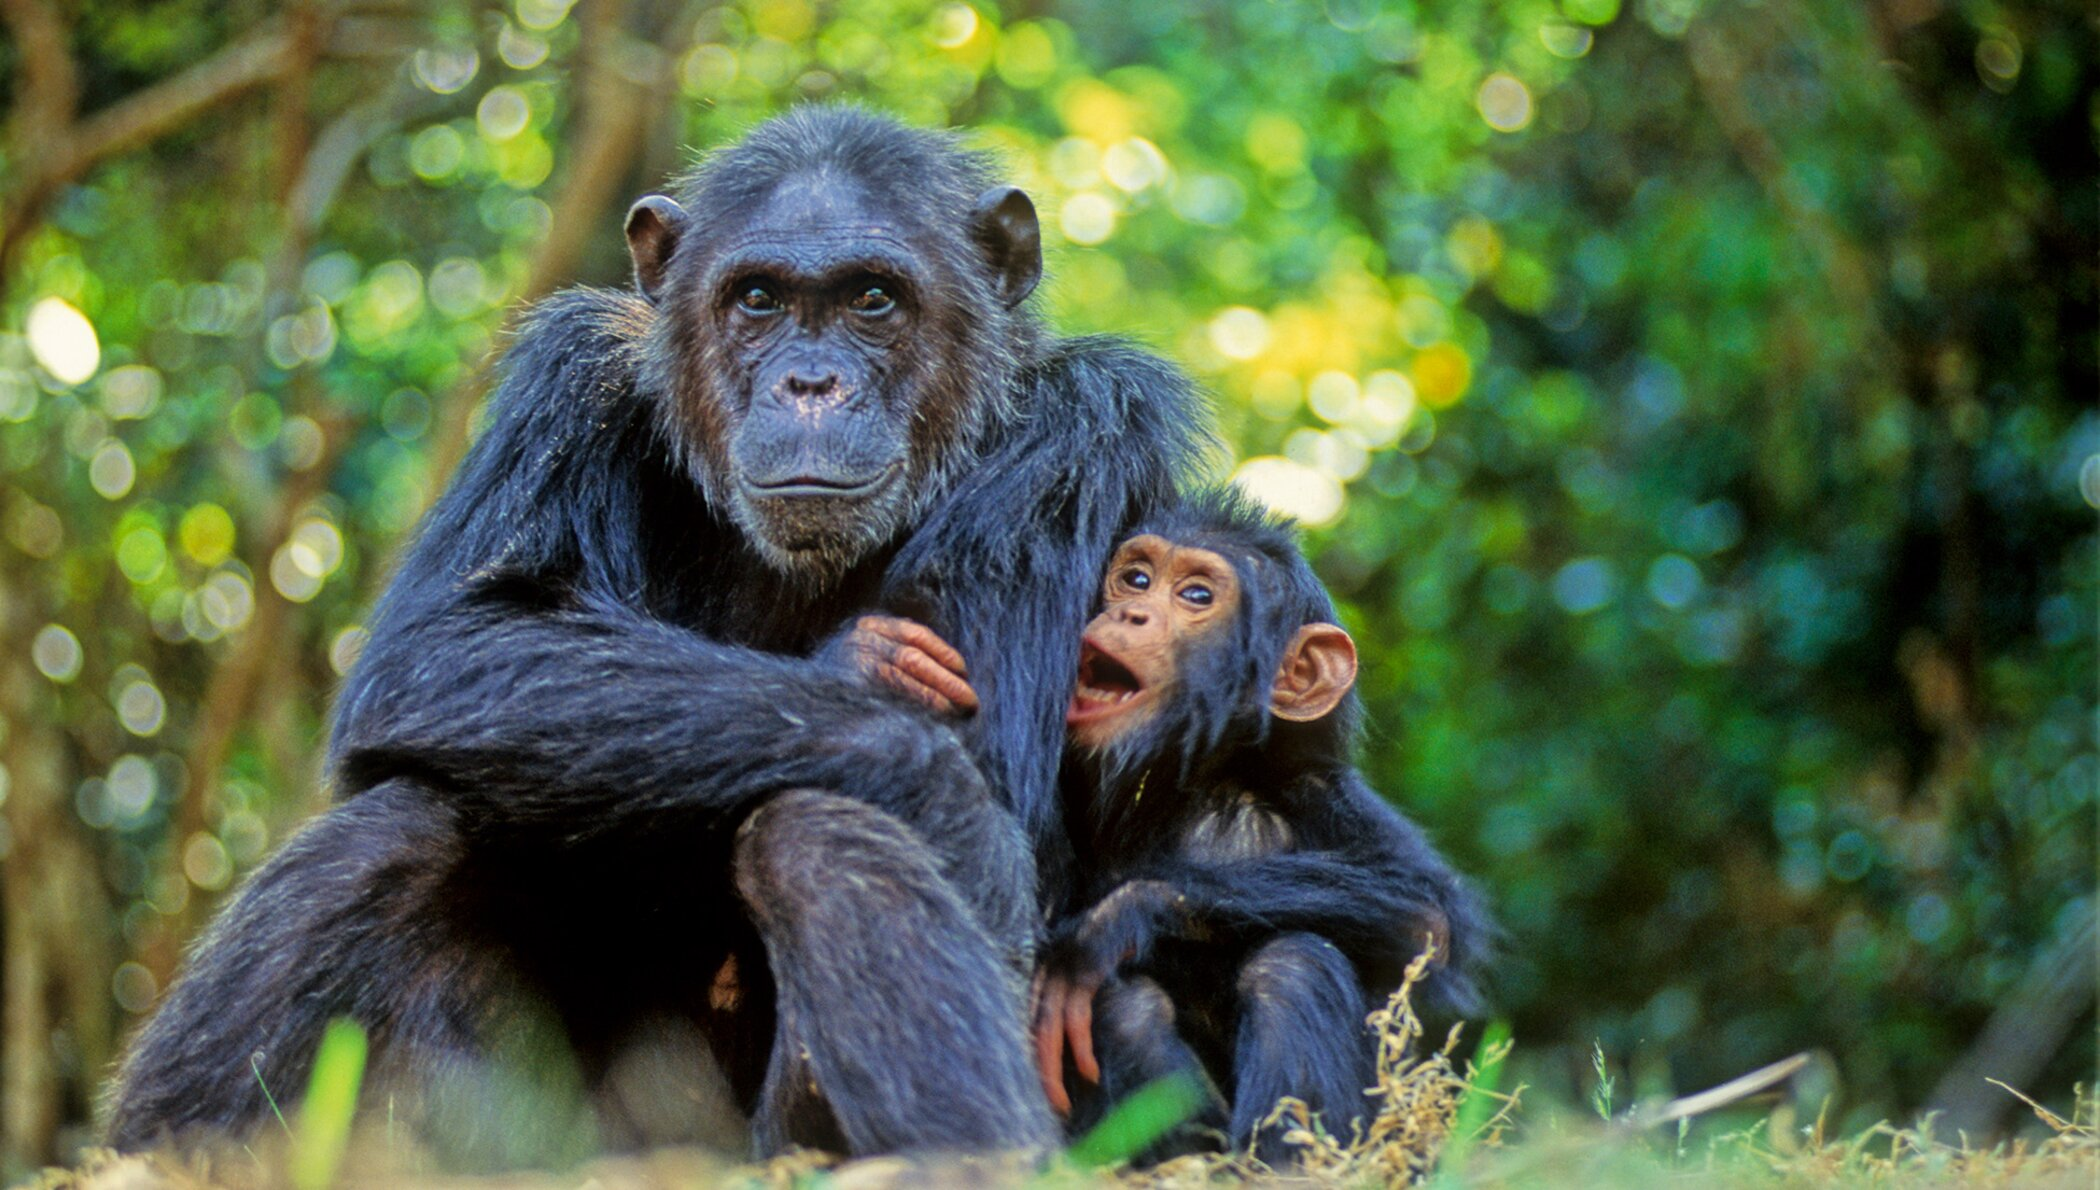 Chimpanzees correct cultural biases about how good mothers behave